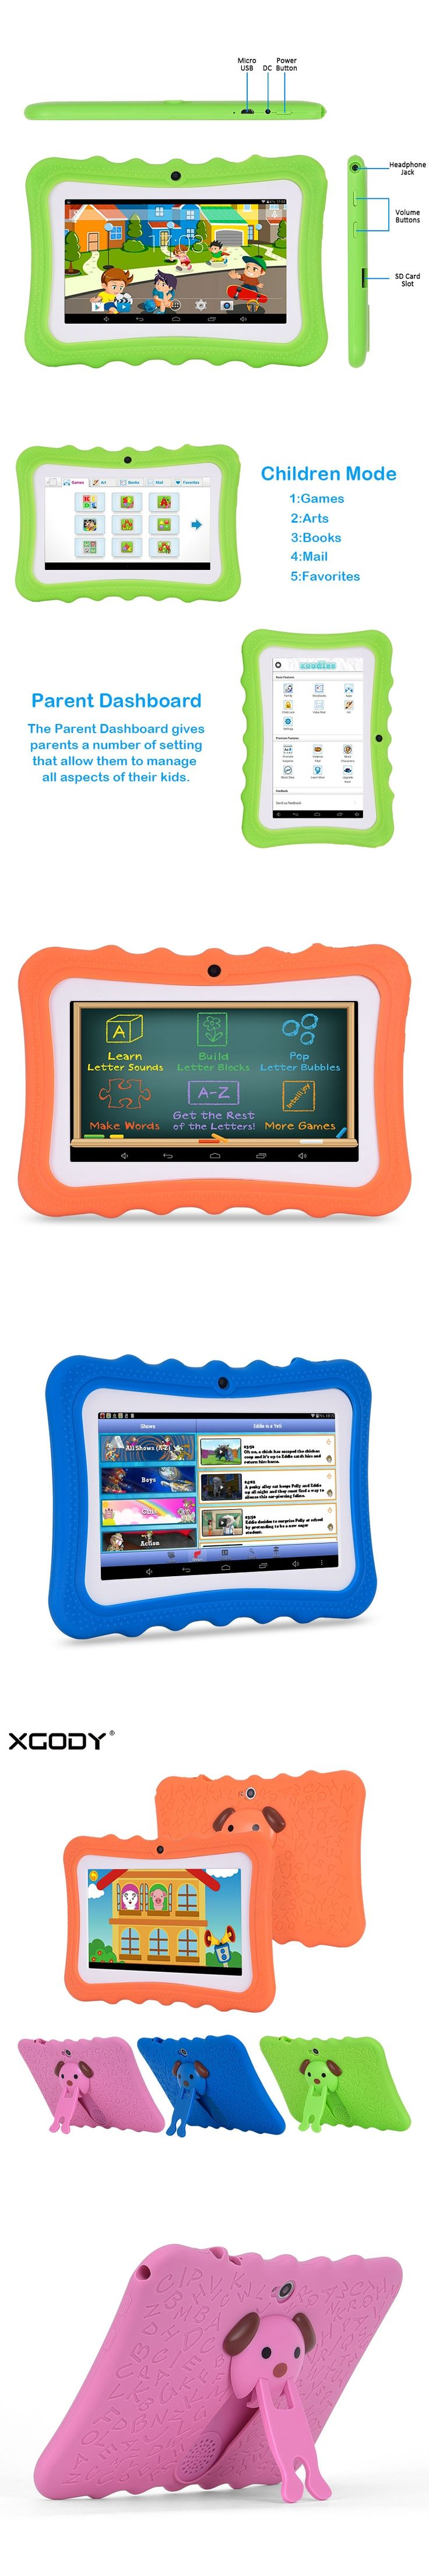 XGODY I711 7 Inch Children Tablet PC Android 4.4 Quad Core 8GB ROM Silicone Case Tablets for Kid Play Store Education Game WiFi